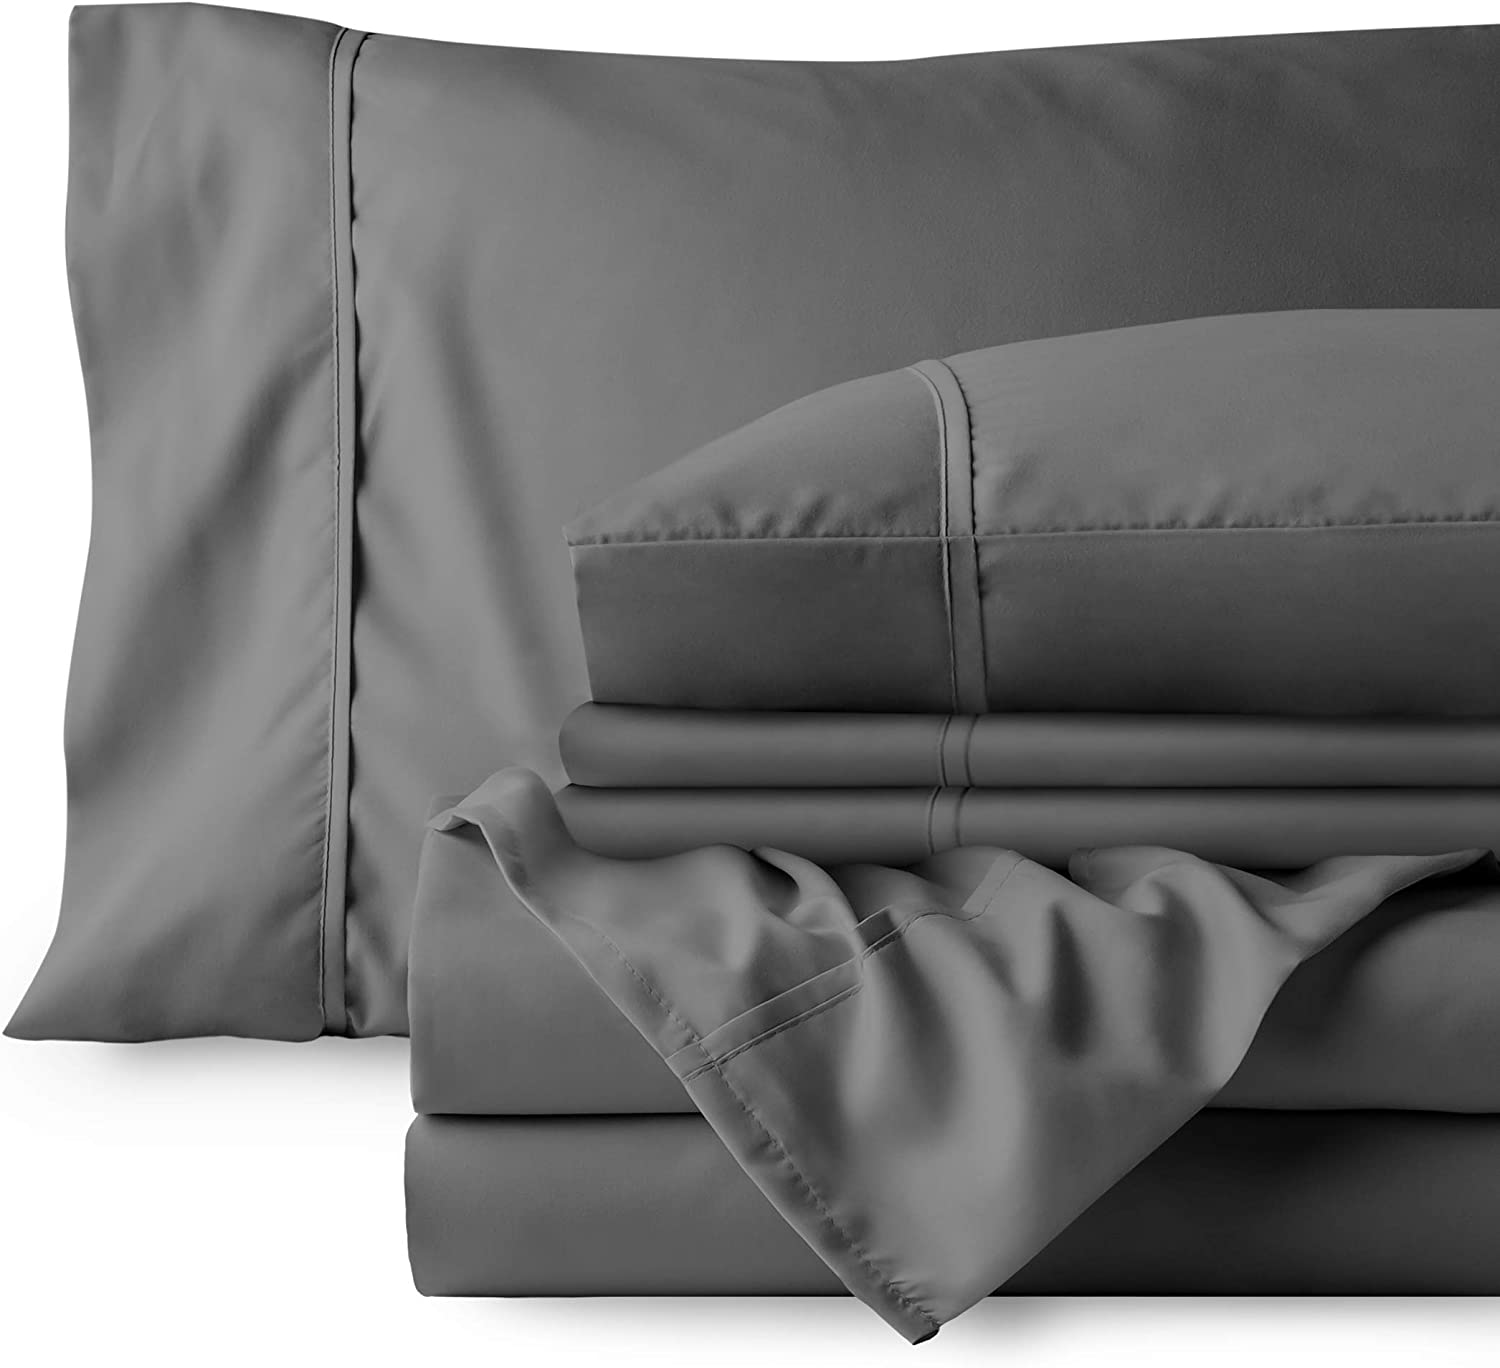 Bare Home 6 Piece 1800 Deep Pocket Bed Sheet Set - Ultra-Soft Hypoallergenic - 4 Pillowcases (King, Grey)